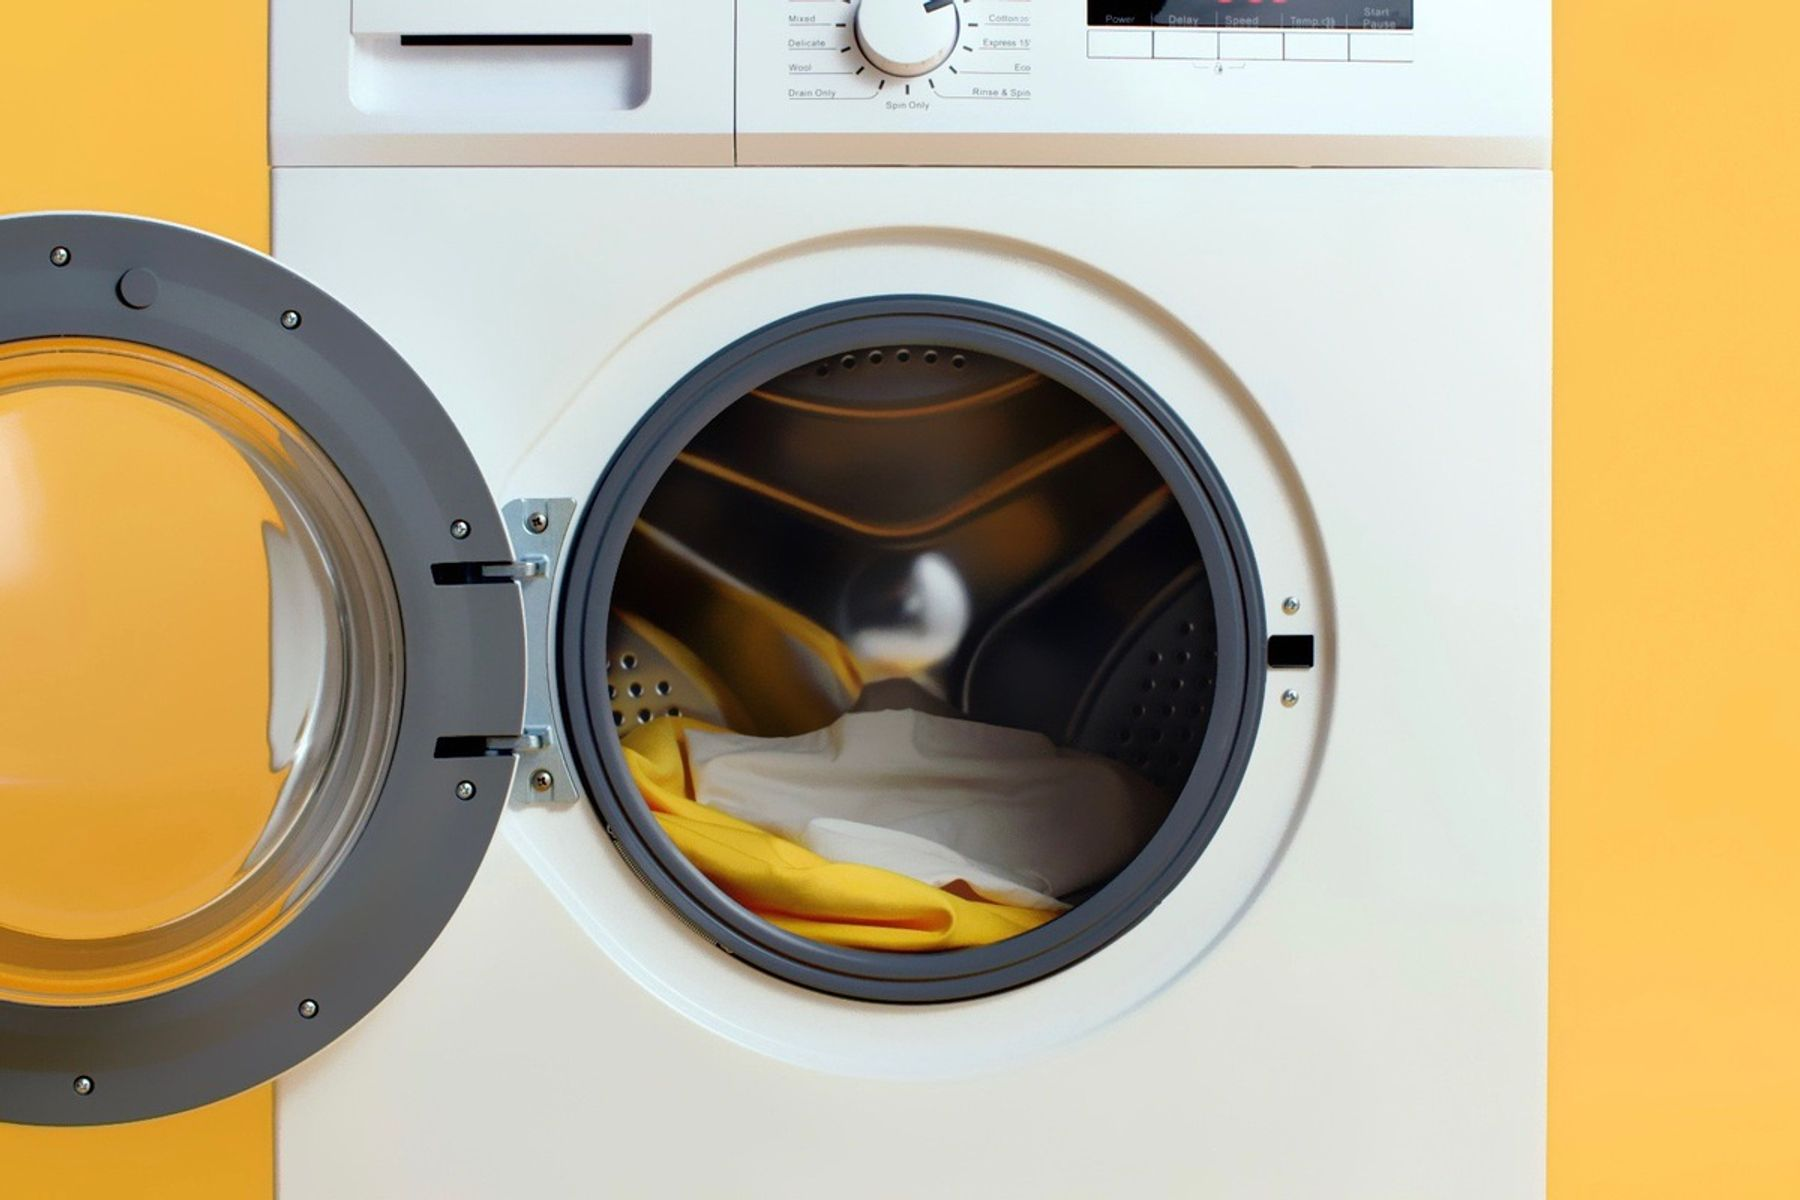 Step 4: Washing machine with open door